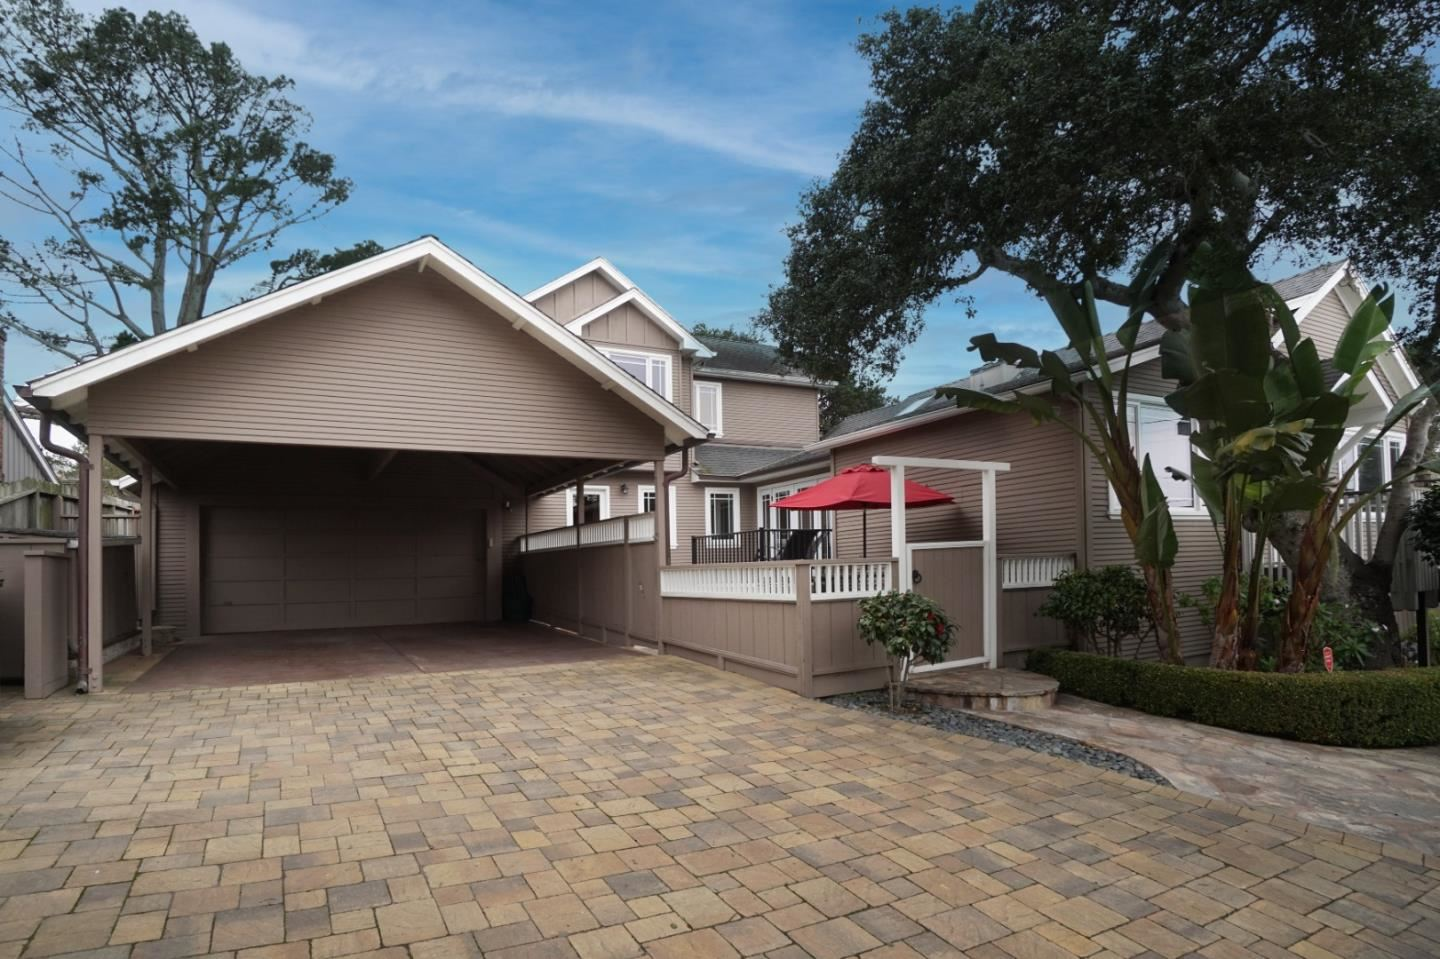 Photo for 697 Lily ST, MONTEREY, CA 93940 (MLS # ML81827379)